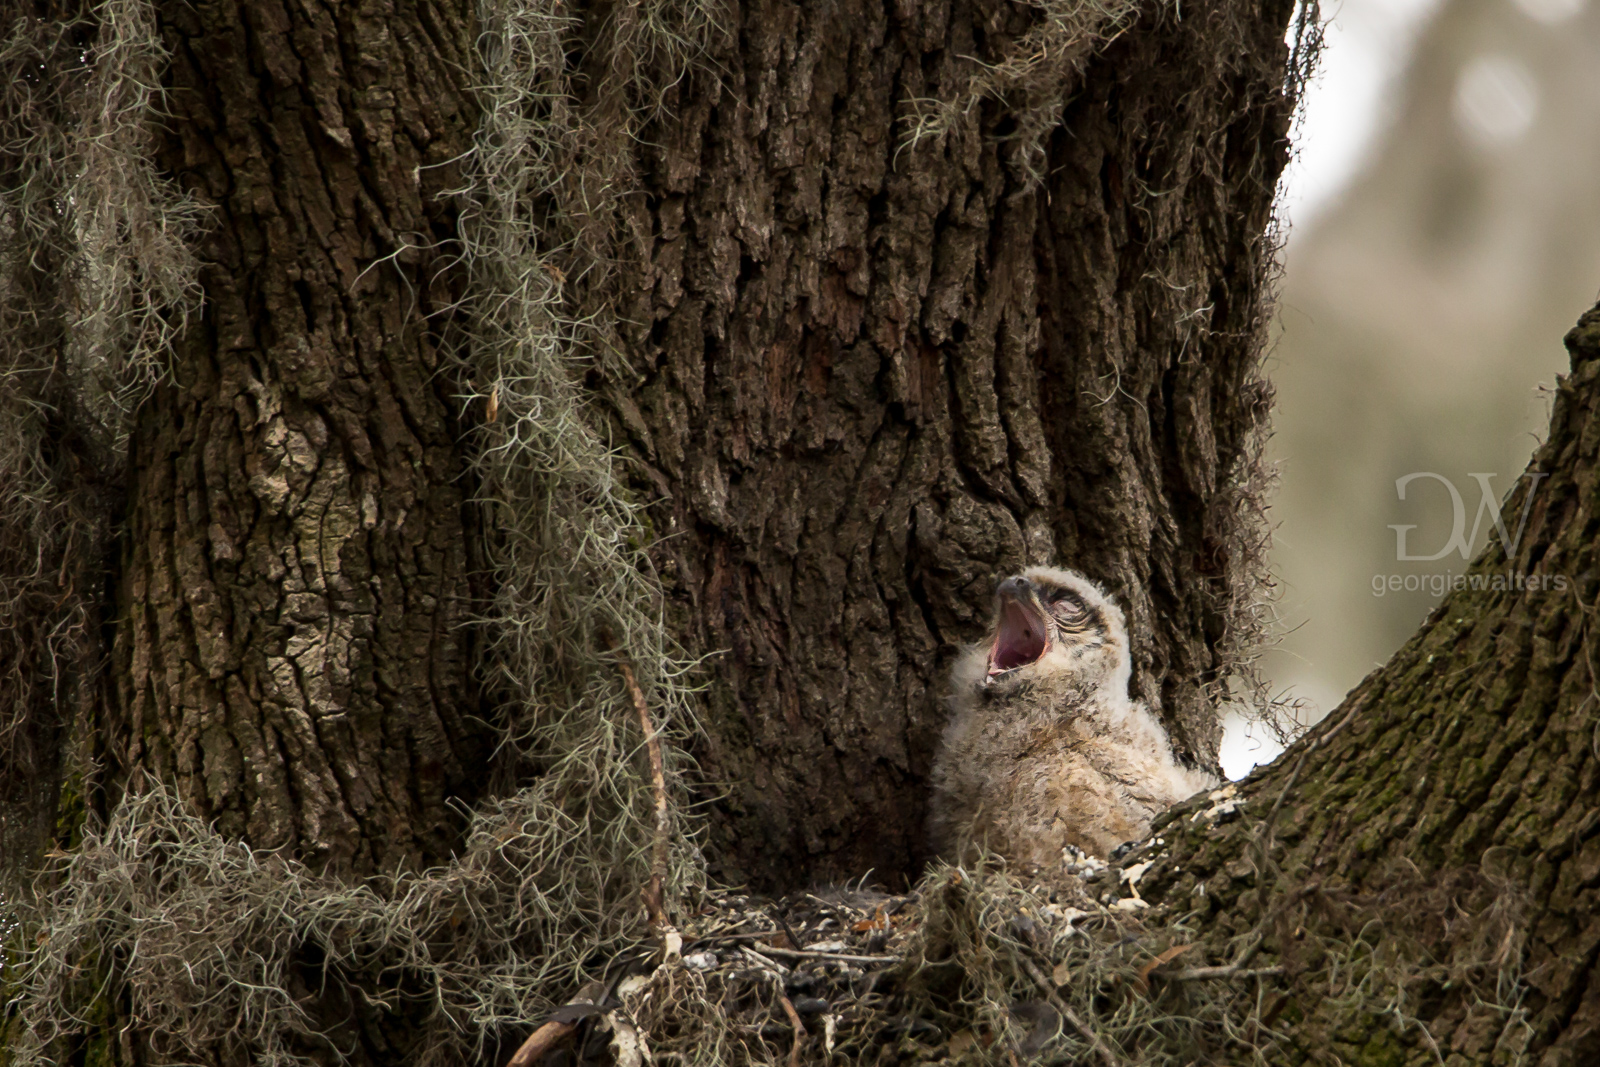 Great horned owlet yawning.